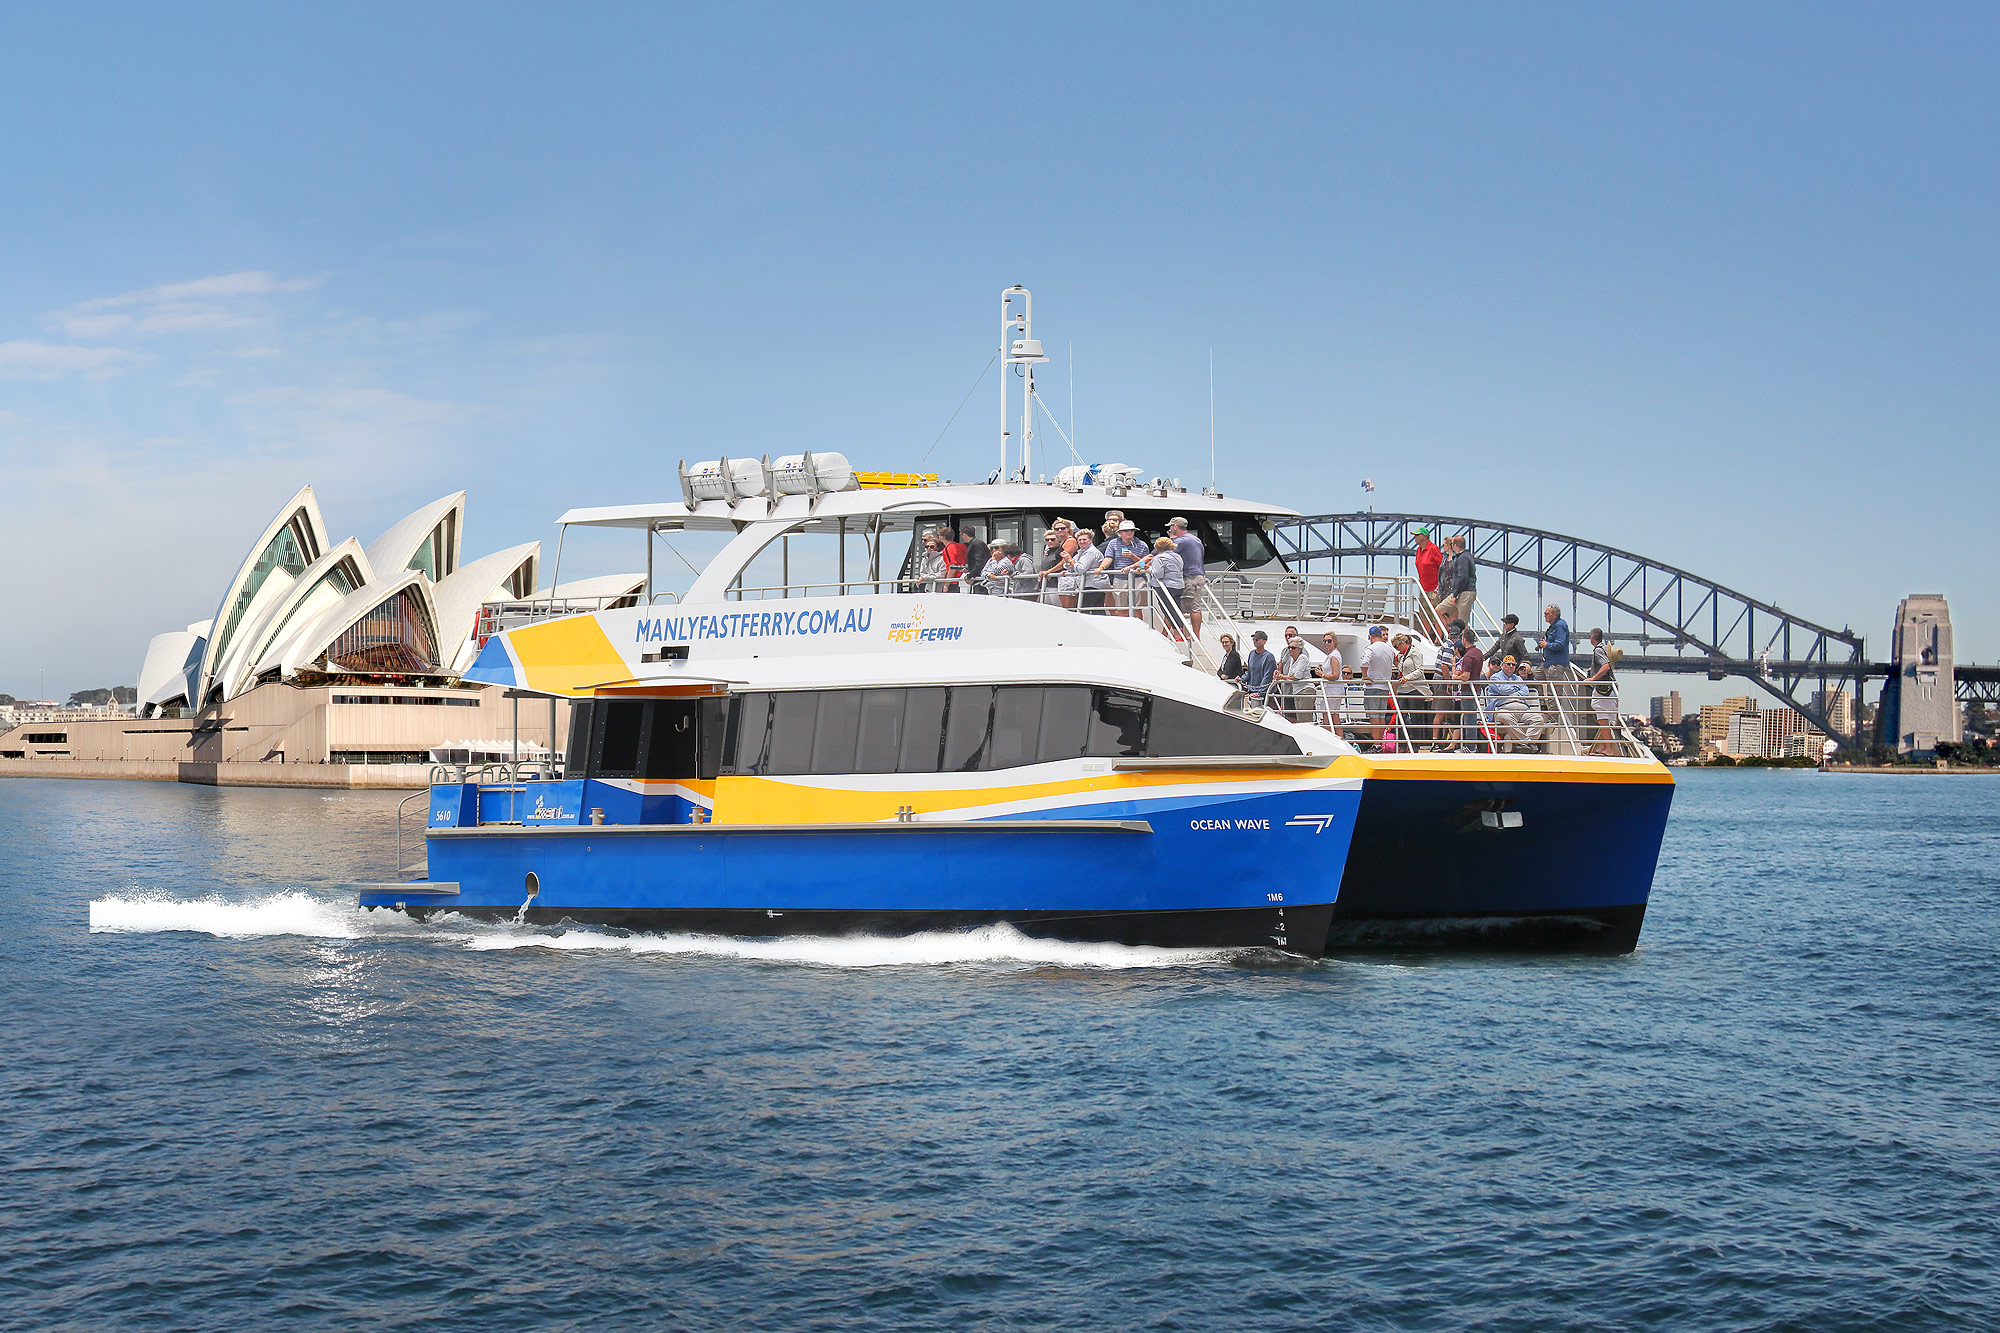 Sydney Harbour Cruise, My Fast Ferry